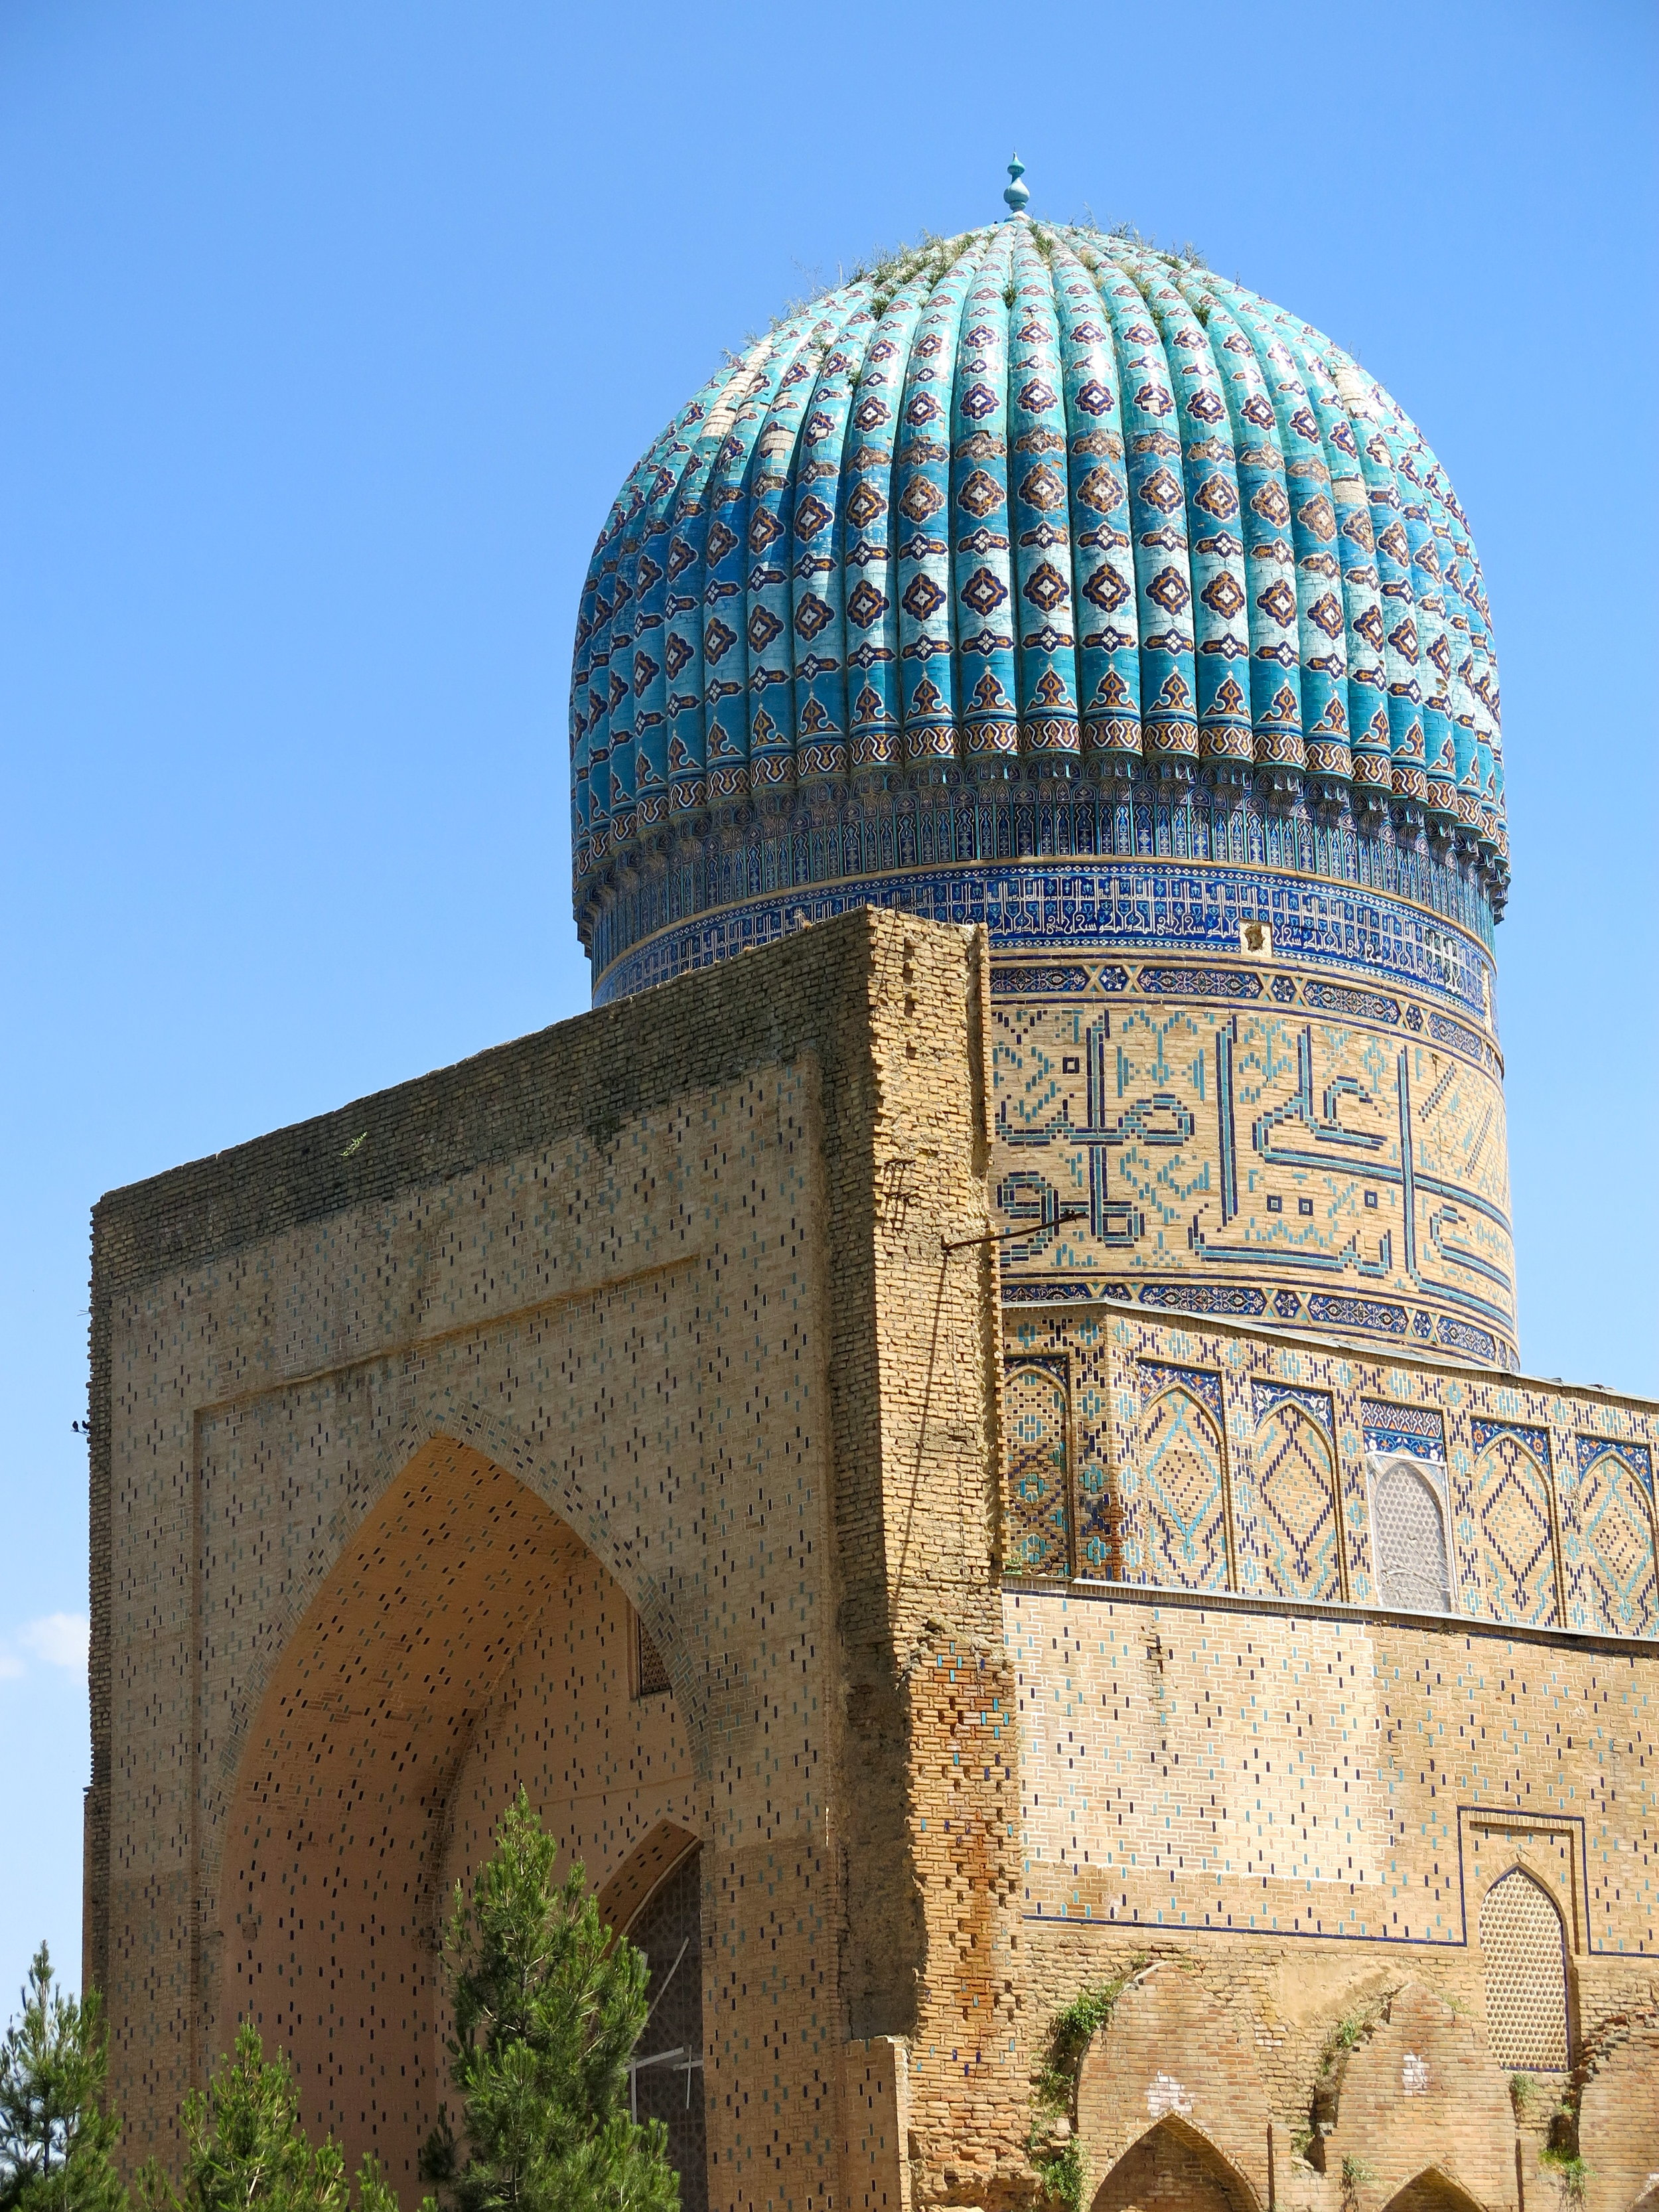 The mighty mosque of Bibi-Khanym was just ruins a century ago